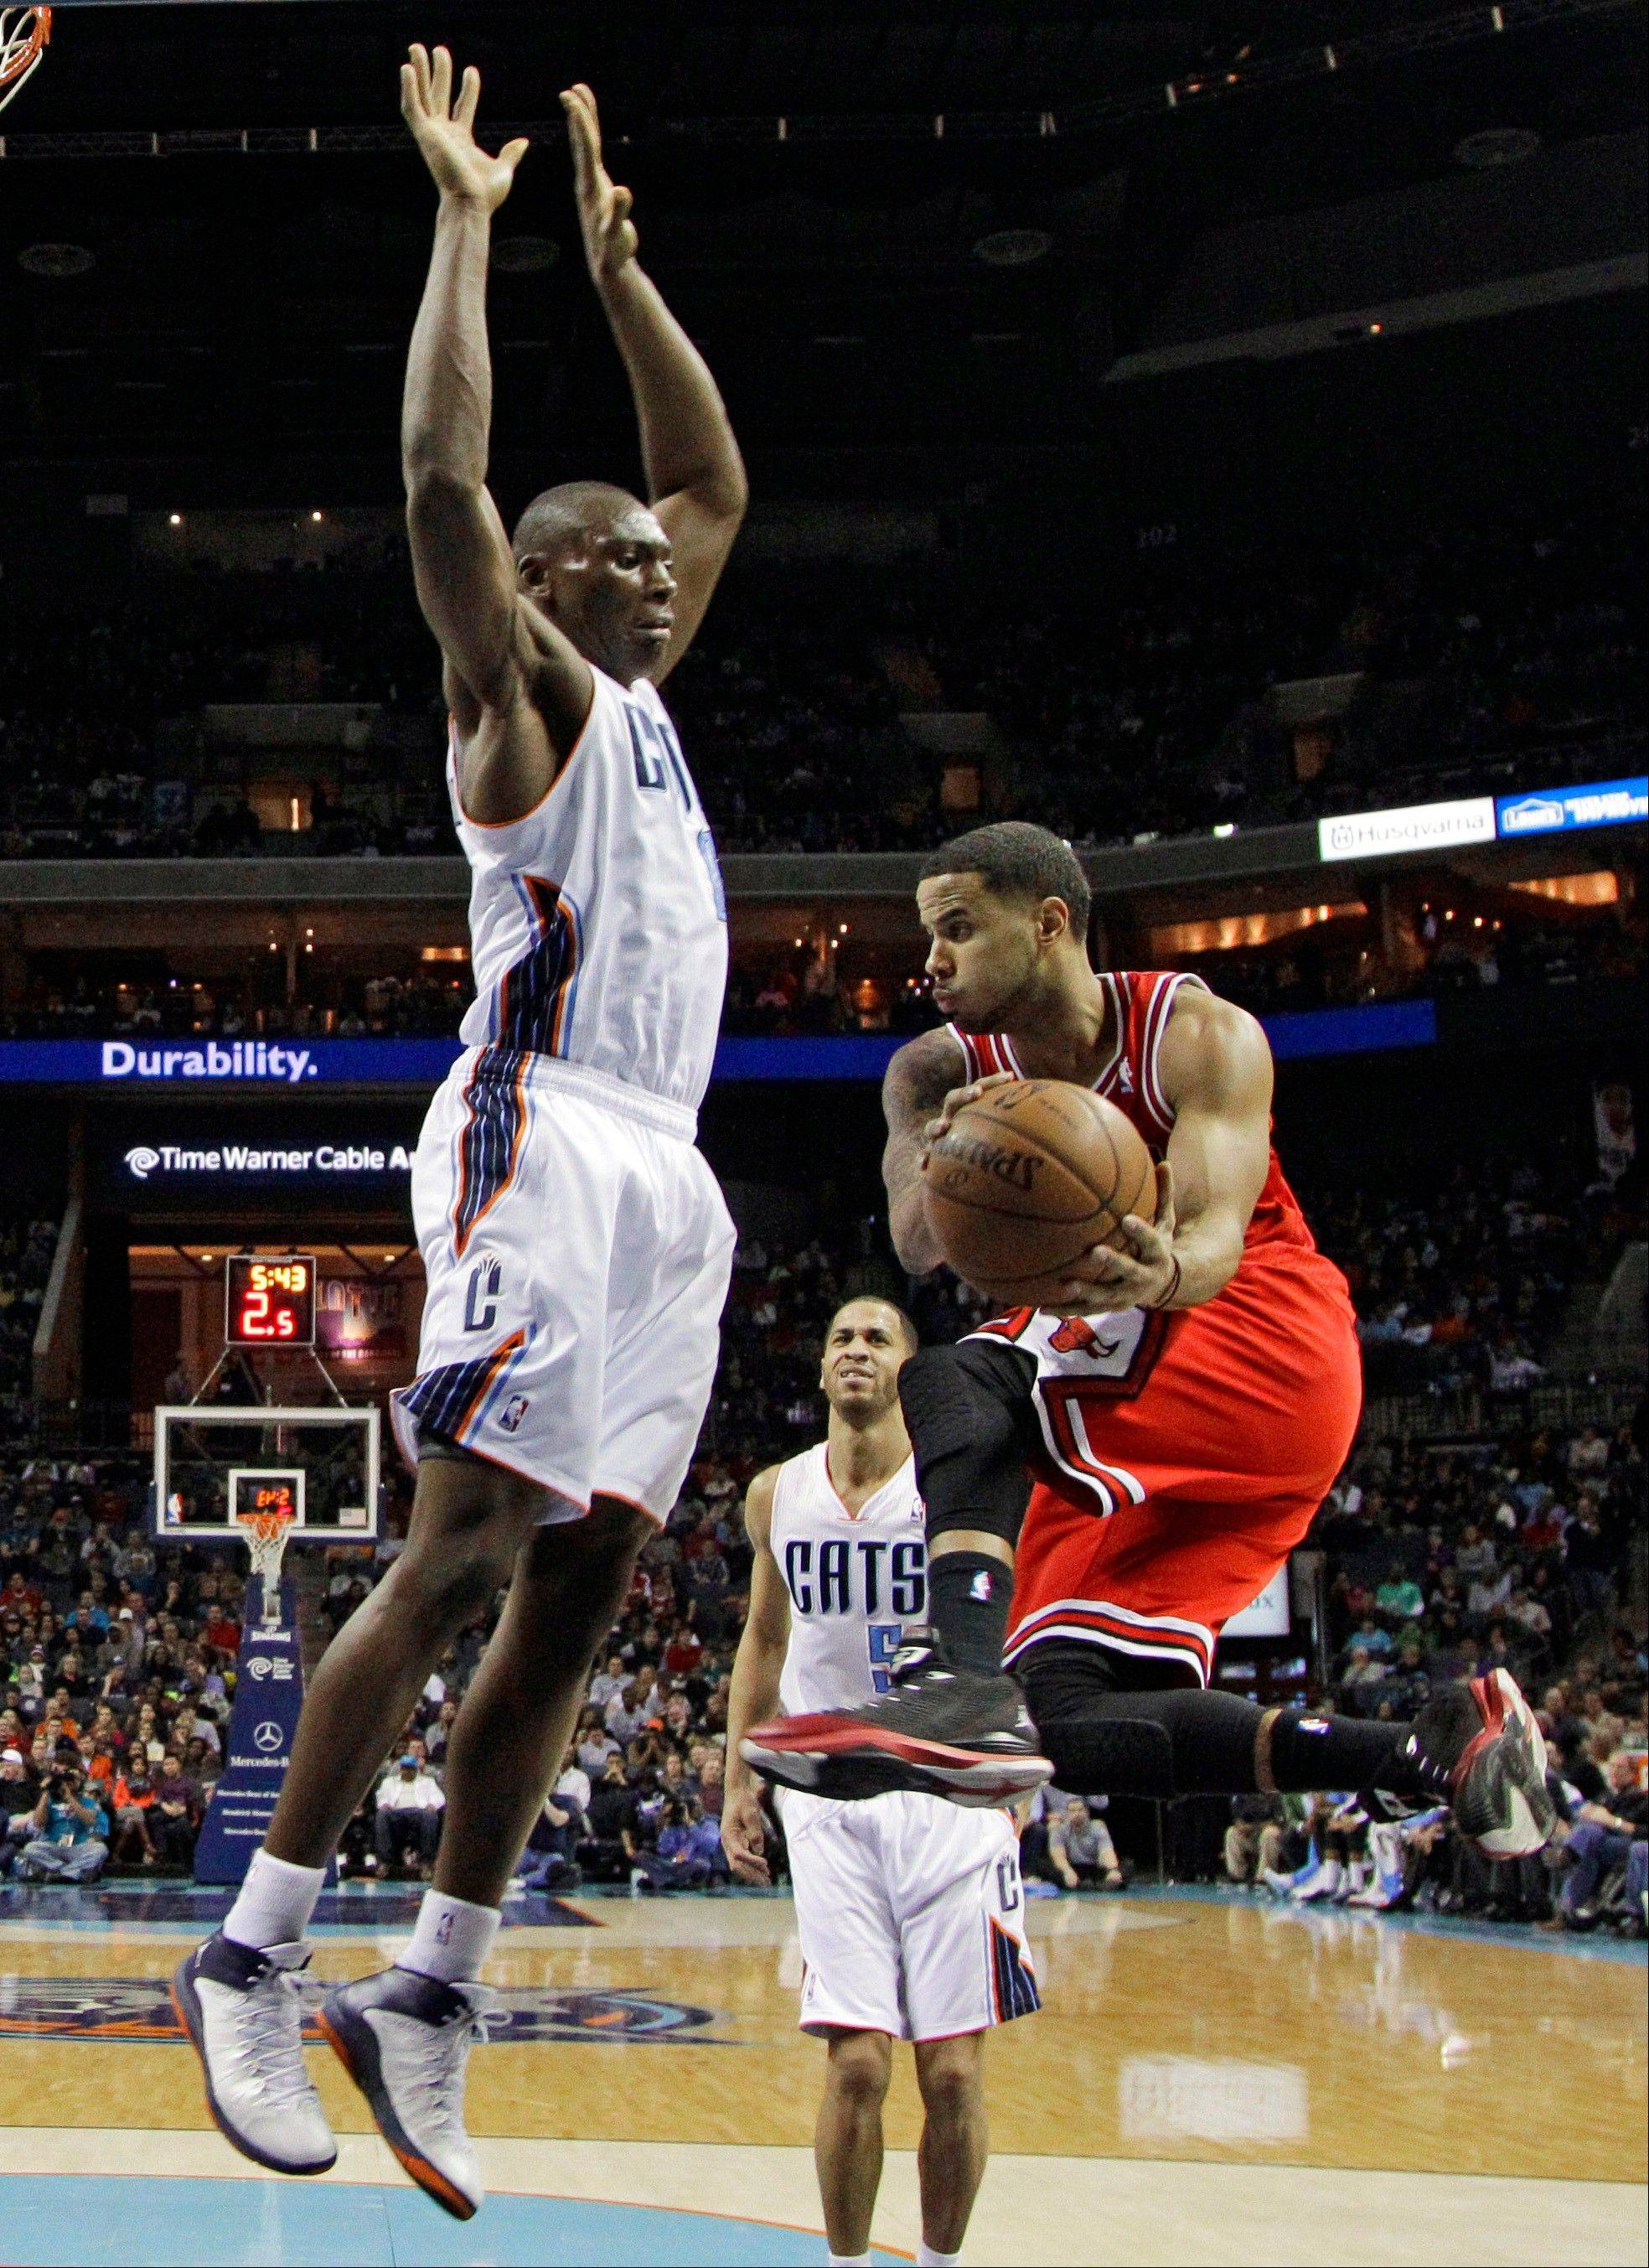 The Bulls' D.J. Augustin, right, looks to pass around Charlotte Bobcats' Bismack Biyombo, left, during Saturday night's game in Charlotte, N.C. The Bulls beat the Bobcats 89-87.